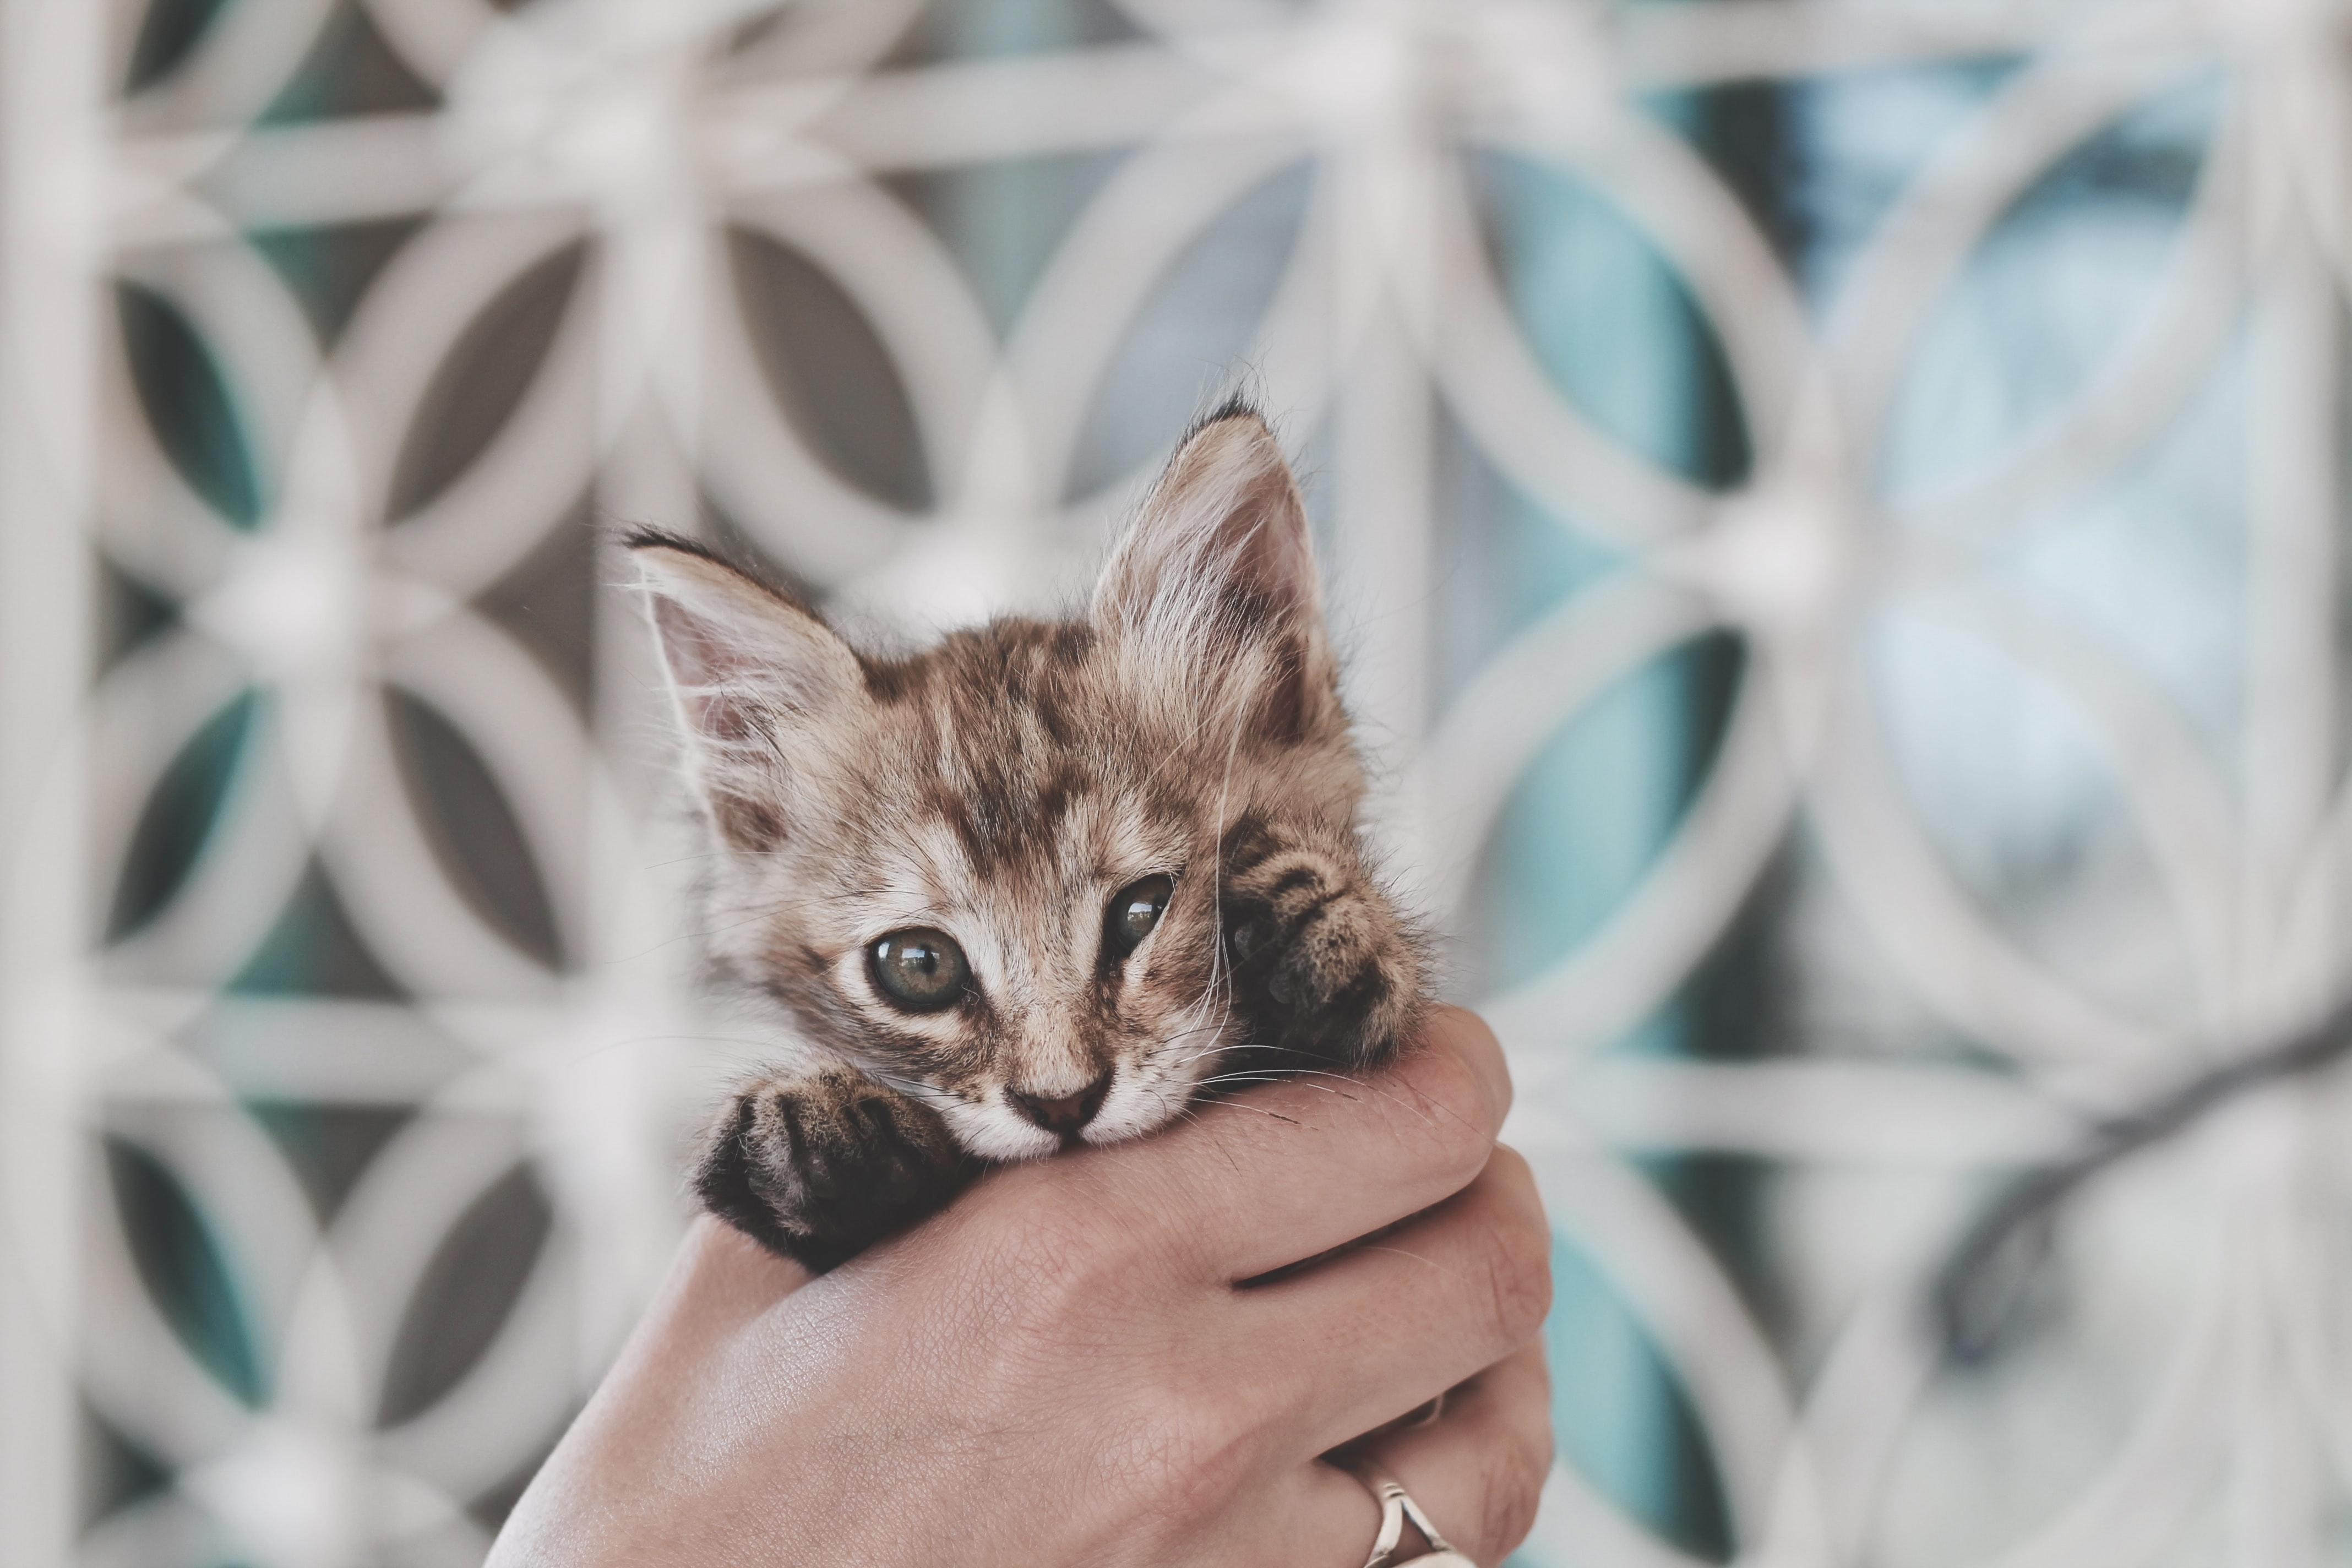 A person's hand holding a kitten